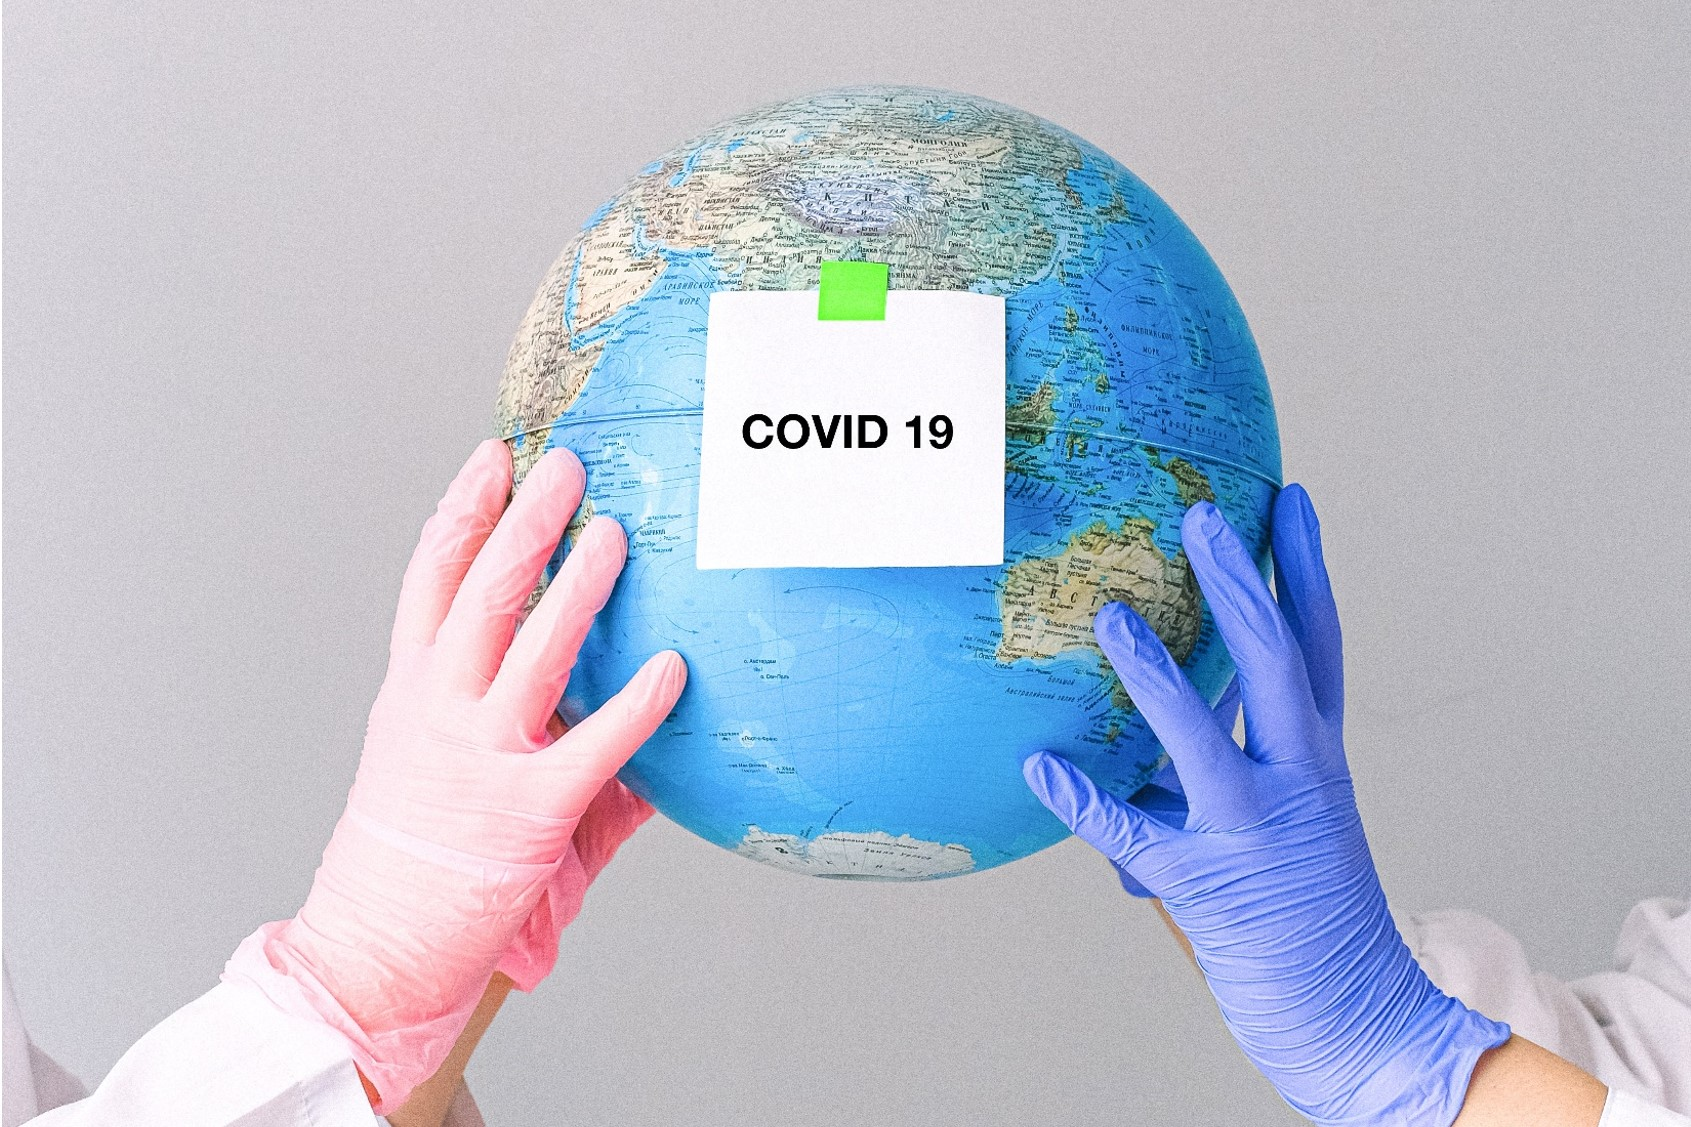 Innovation and sustainability to tackle the COVID-19 crisis